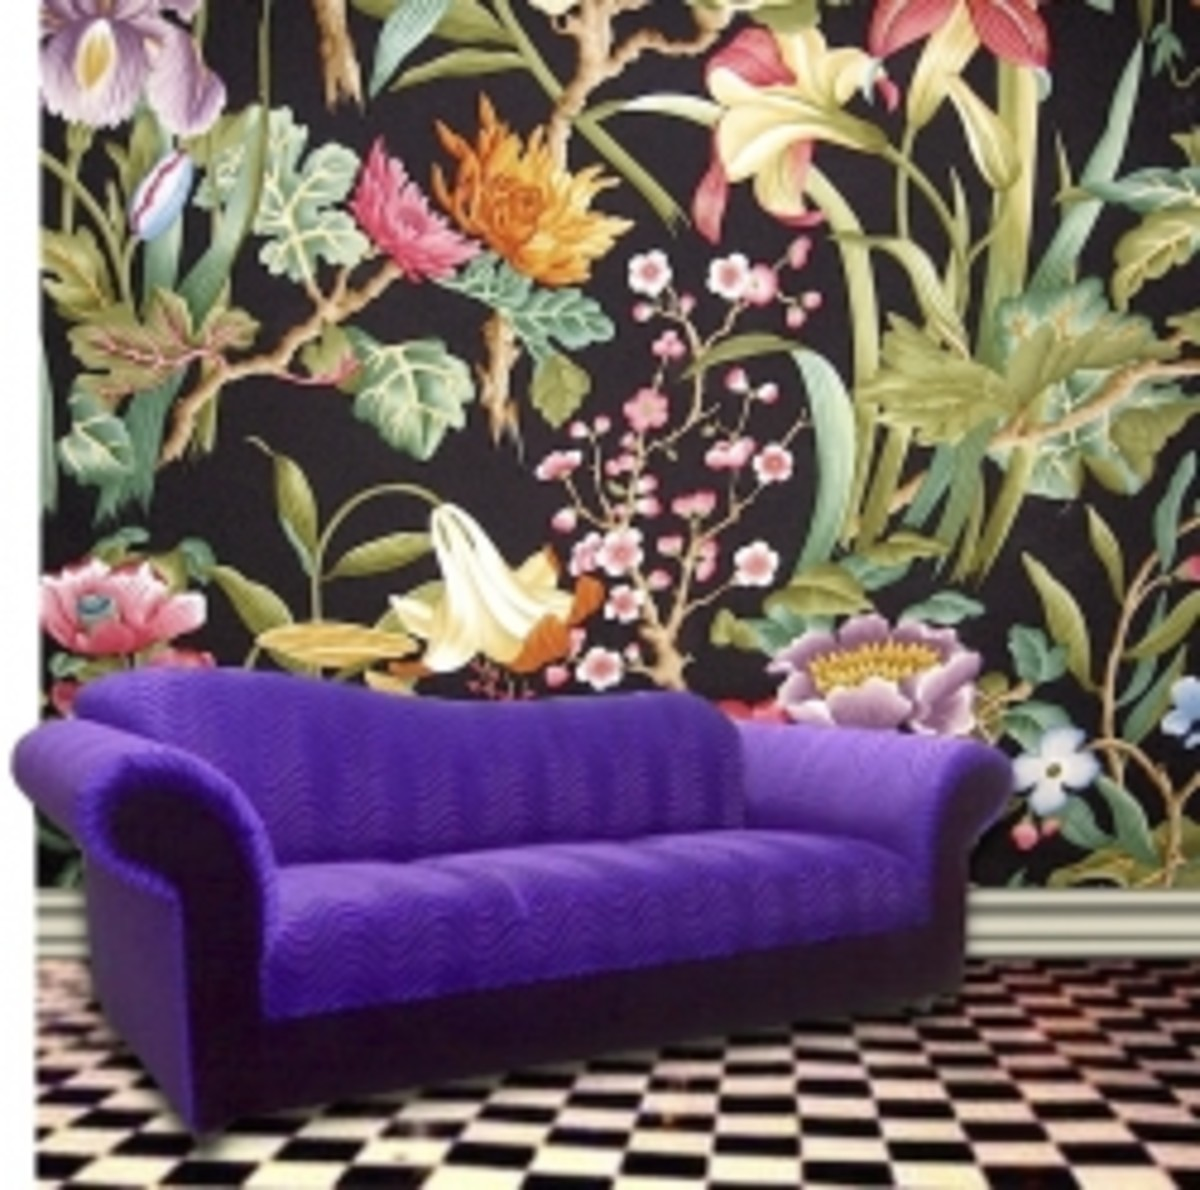 How to Use Fabric as a Wall Covering